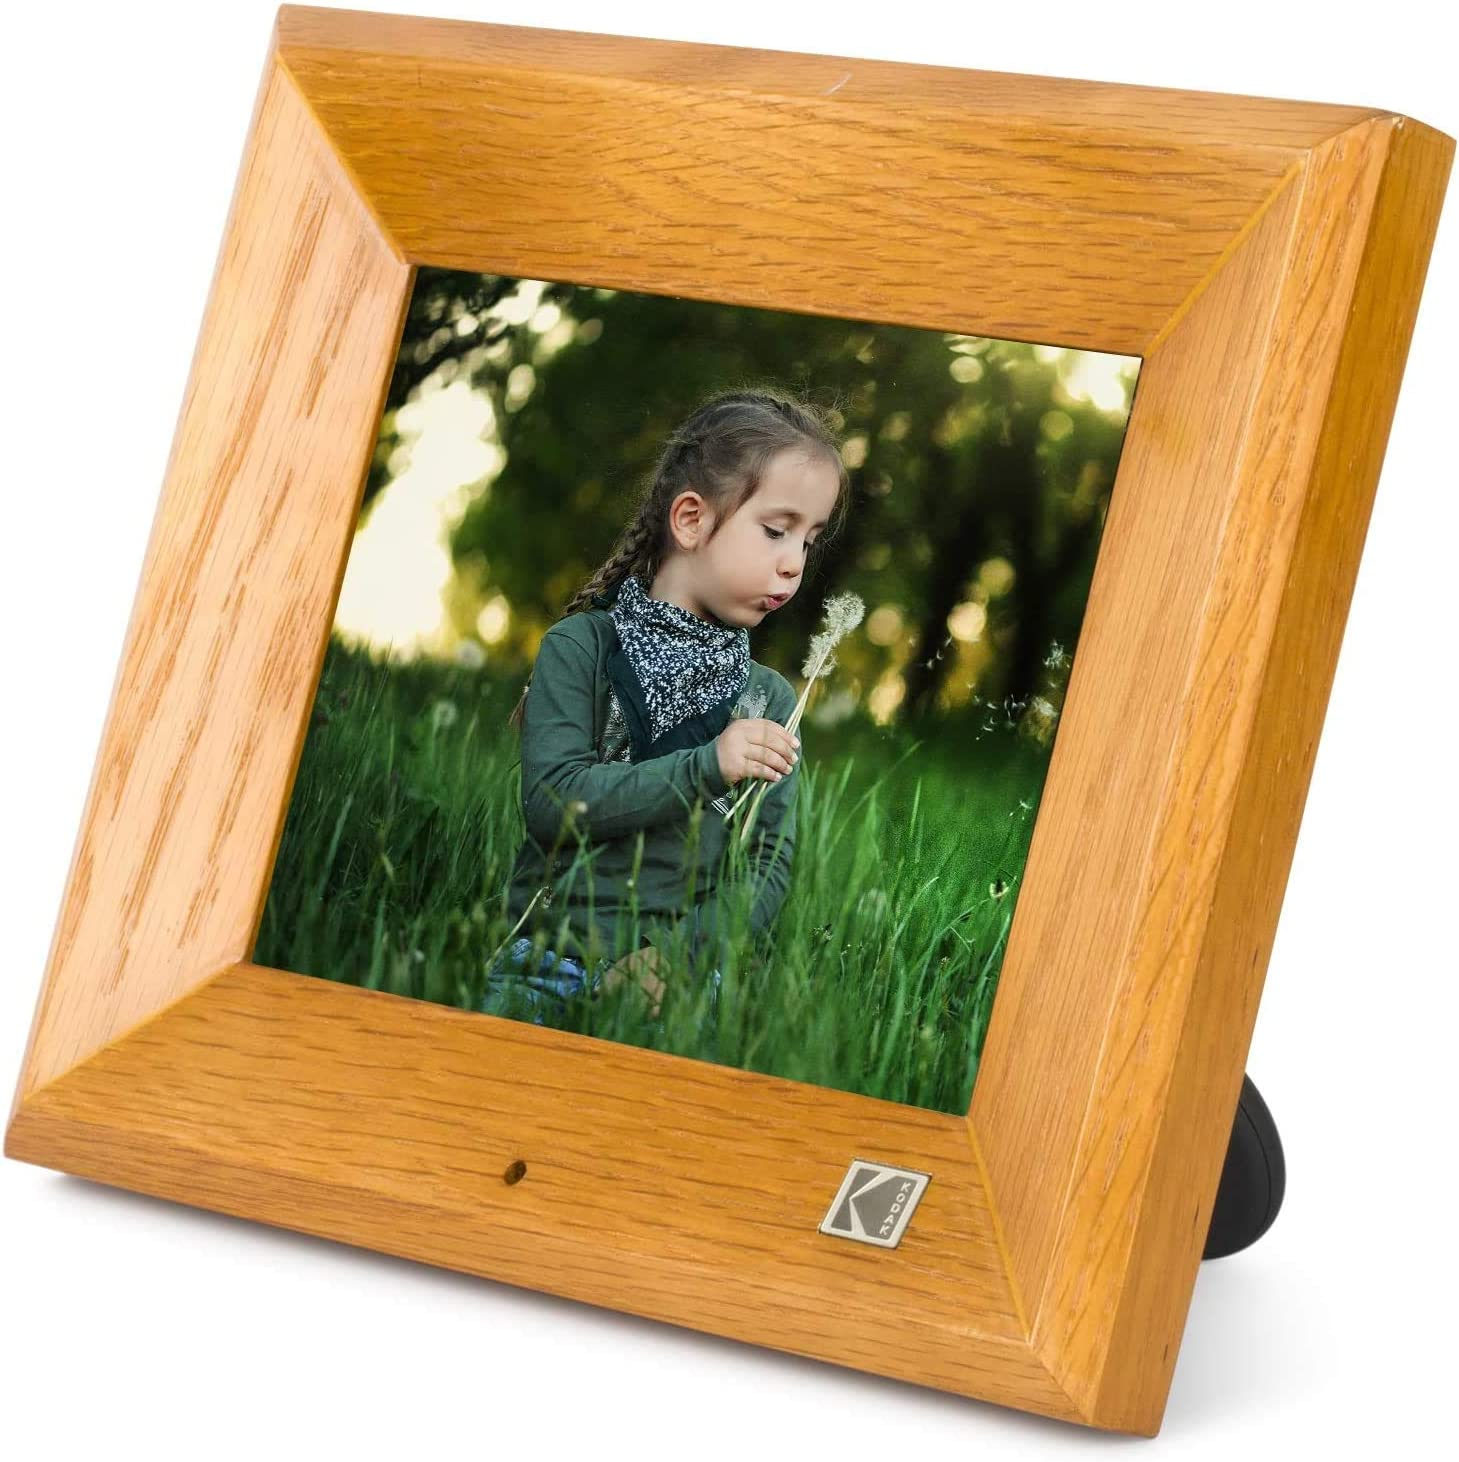 with Remove Control KODAK RDPF-1020V 10 inch 1280x800 IPS and 8GB Internal Memory with Picture Music Video Function Digital Photo Frame Black